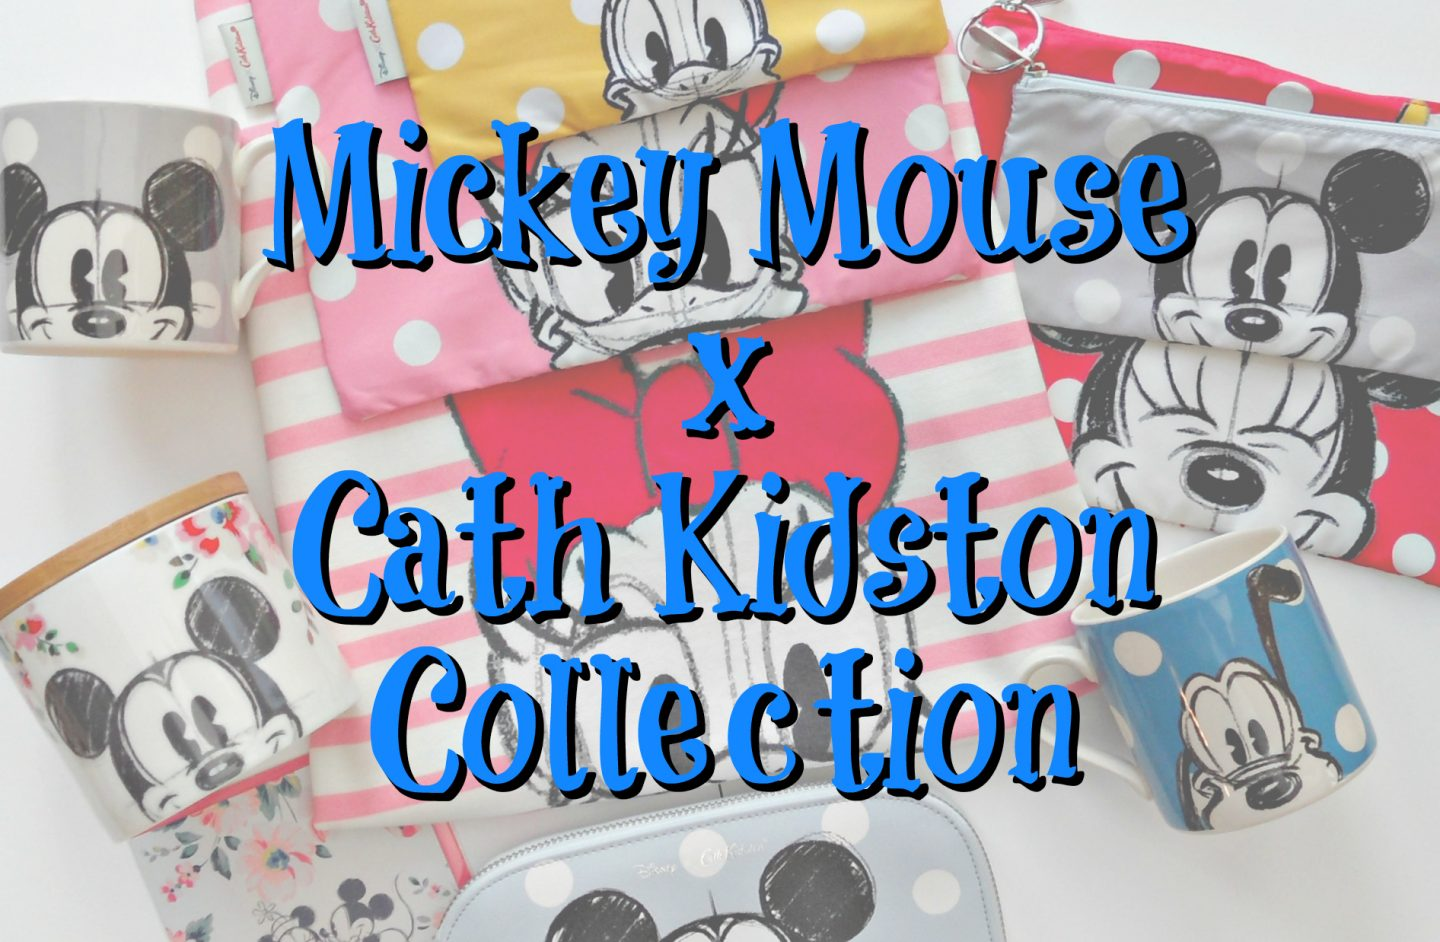 Disney's Mickey Mouse x Cath Kidston Collection